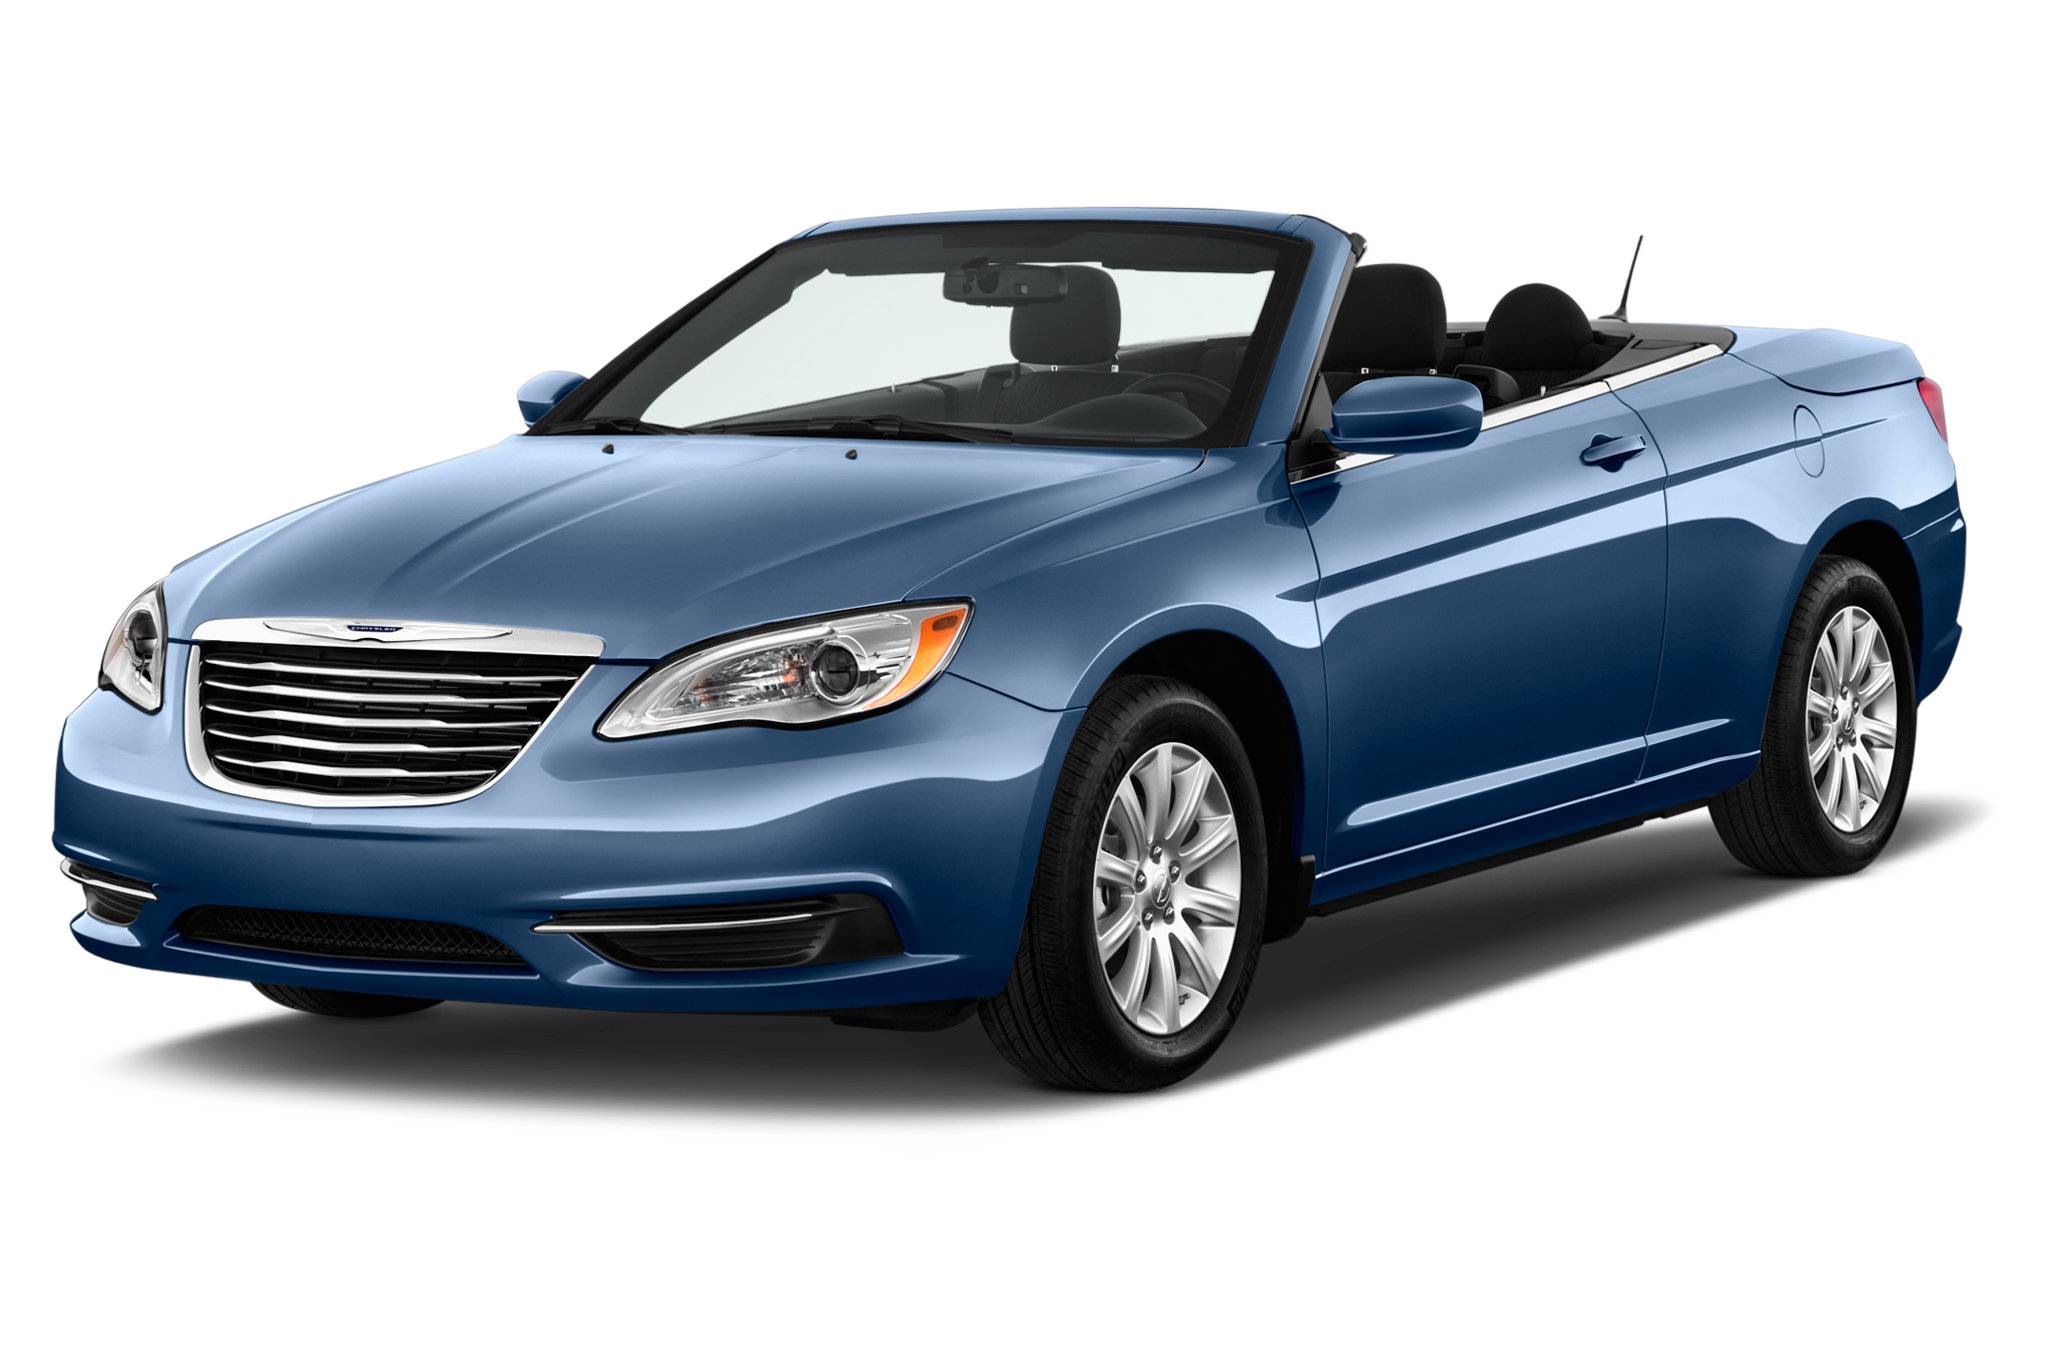 Chrysler 200 Limited >> 2012 Chrysler 200 Limited Convertible - Editors' Notebook - Automobile Magazine